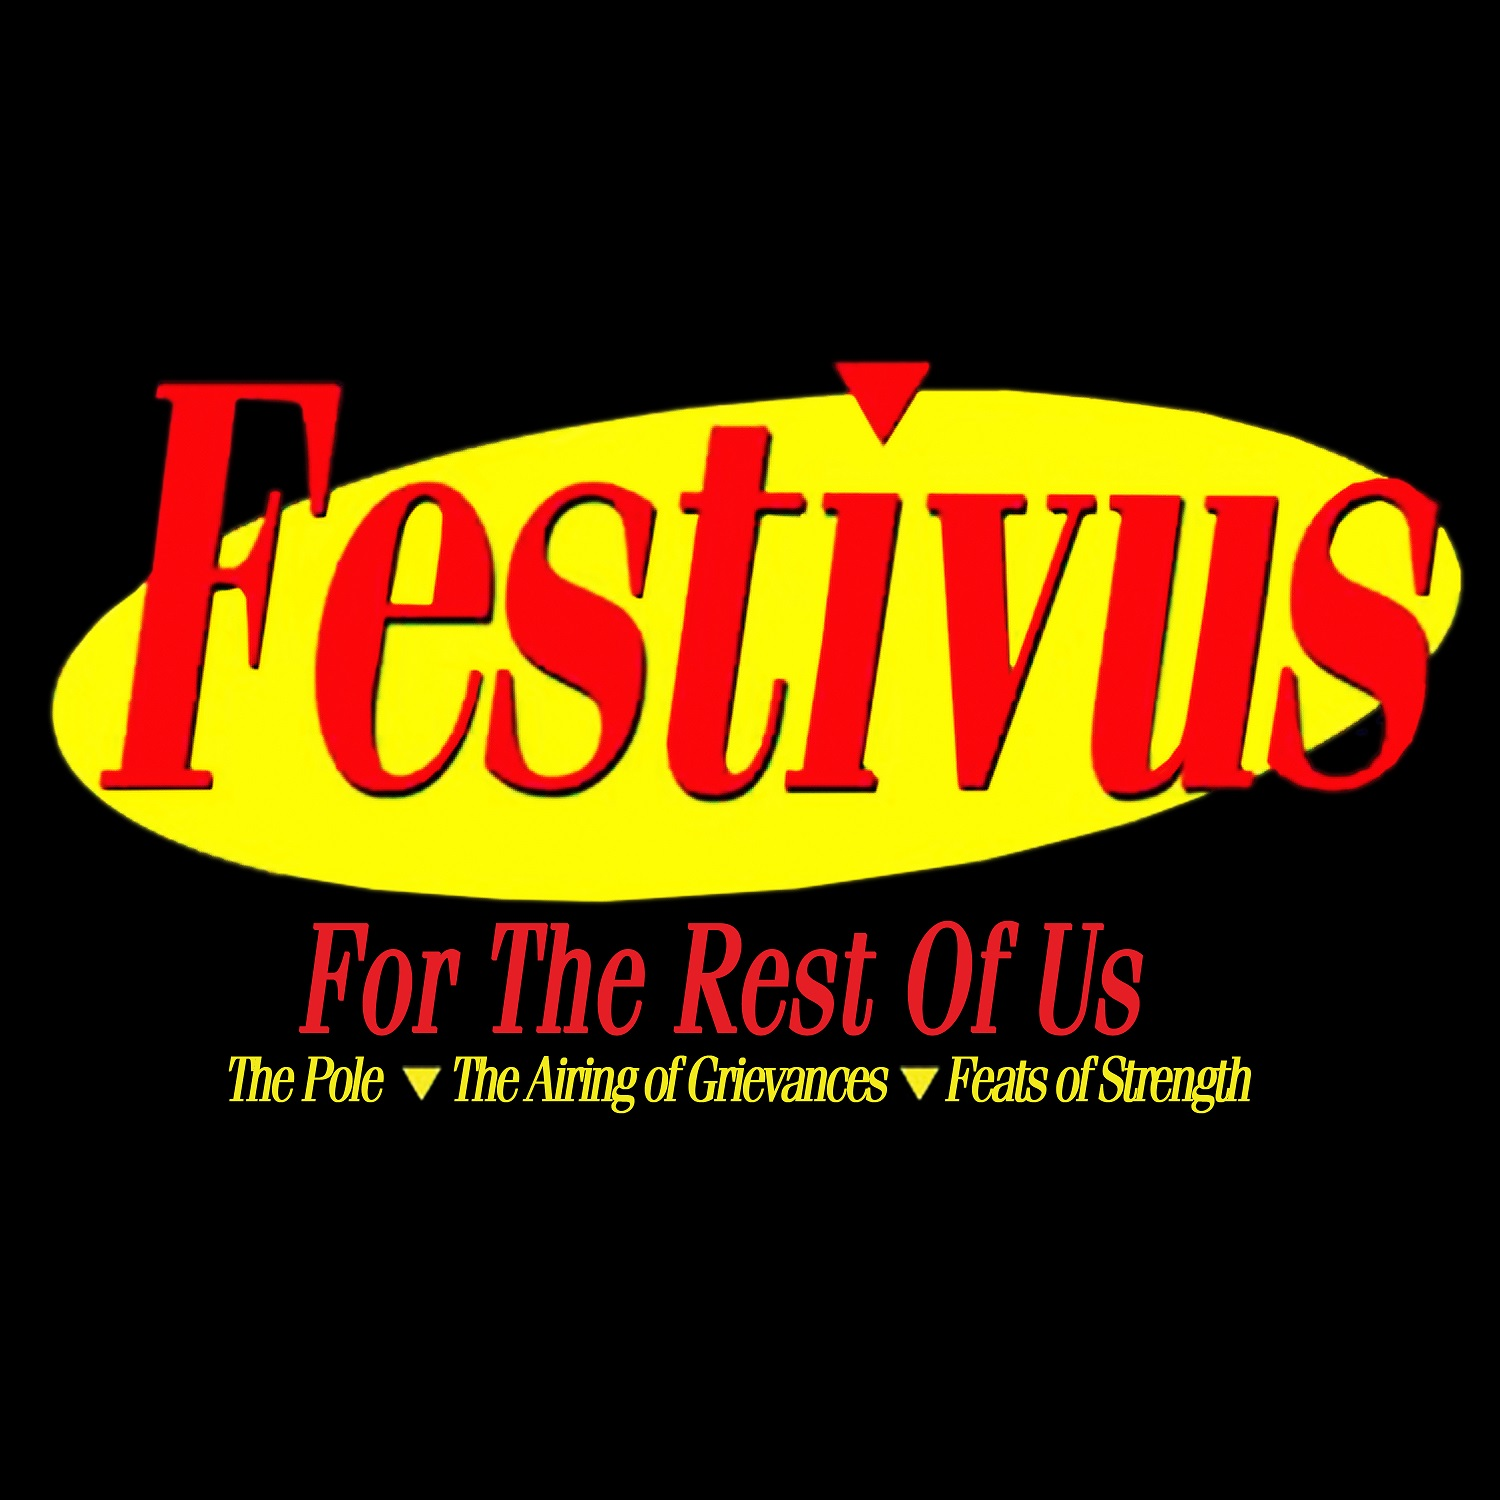 Happy Festivus Everybody!